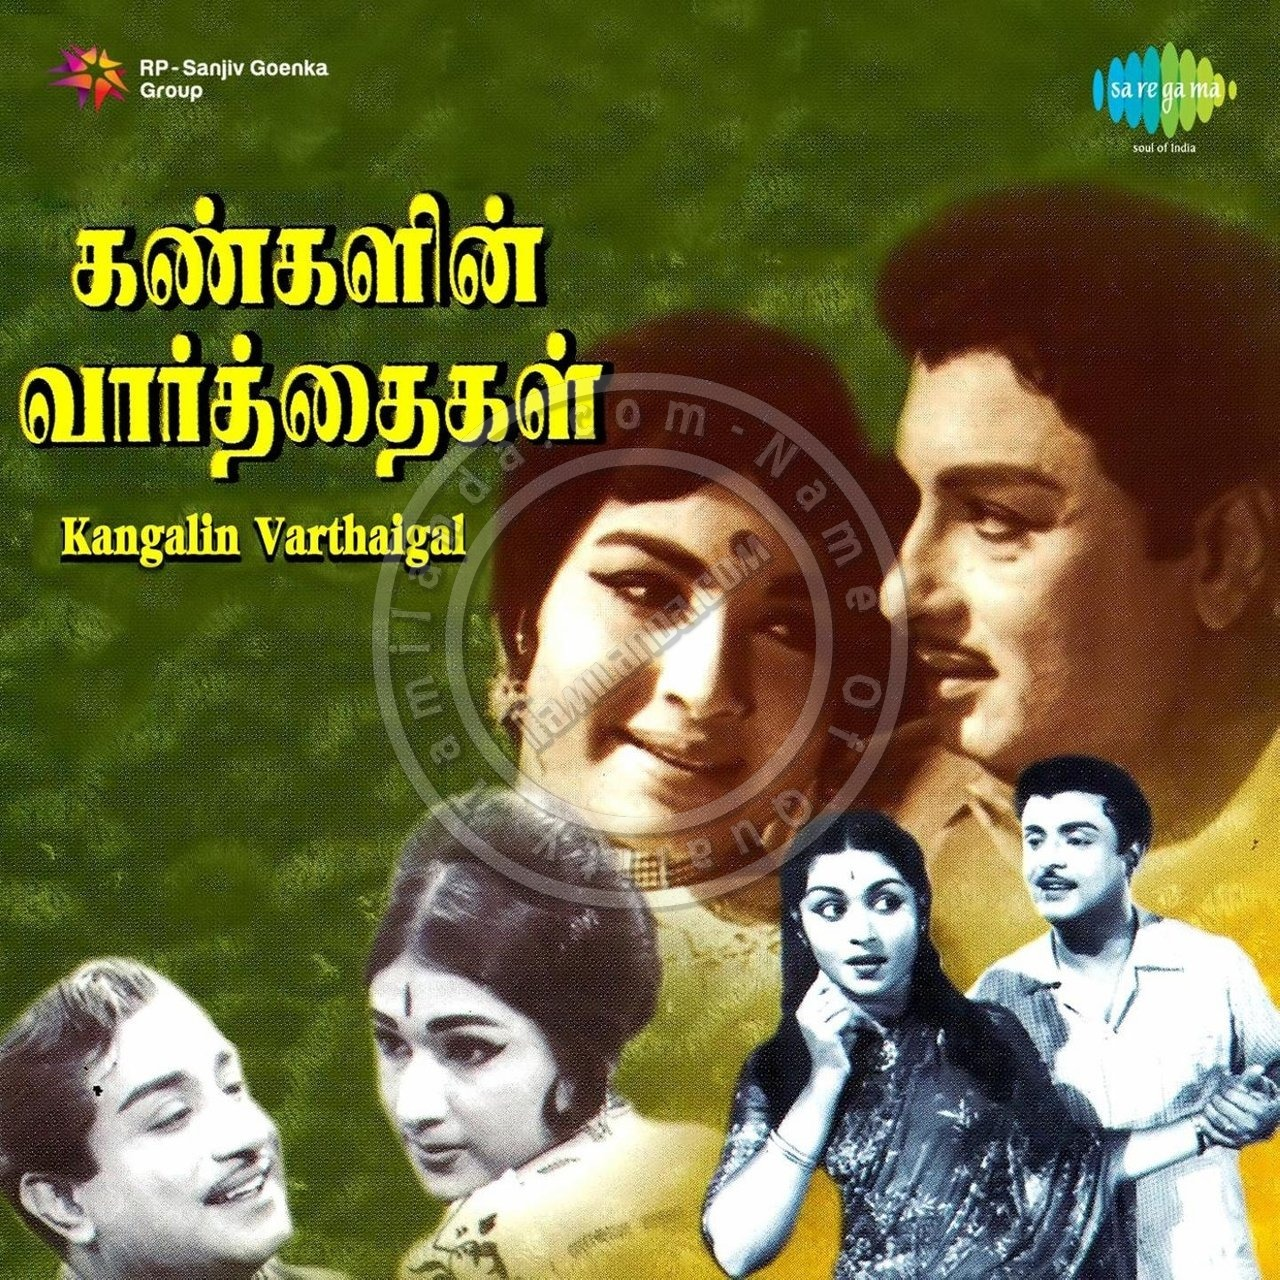 Kangalin Varthaigal 16 BIT FLAC Songs